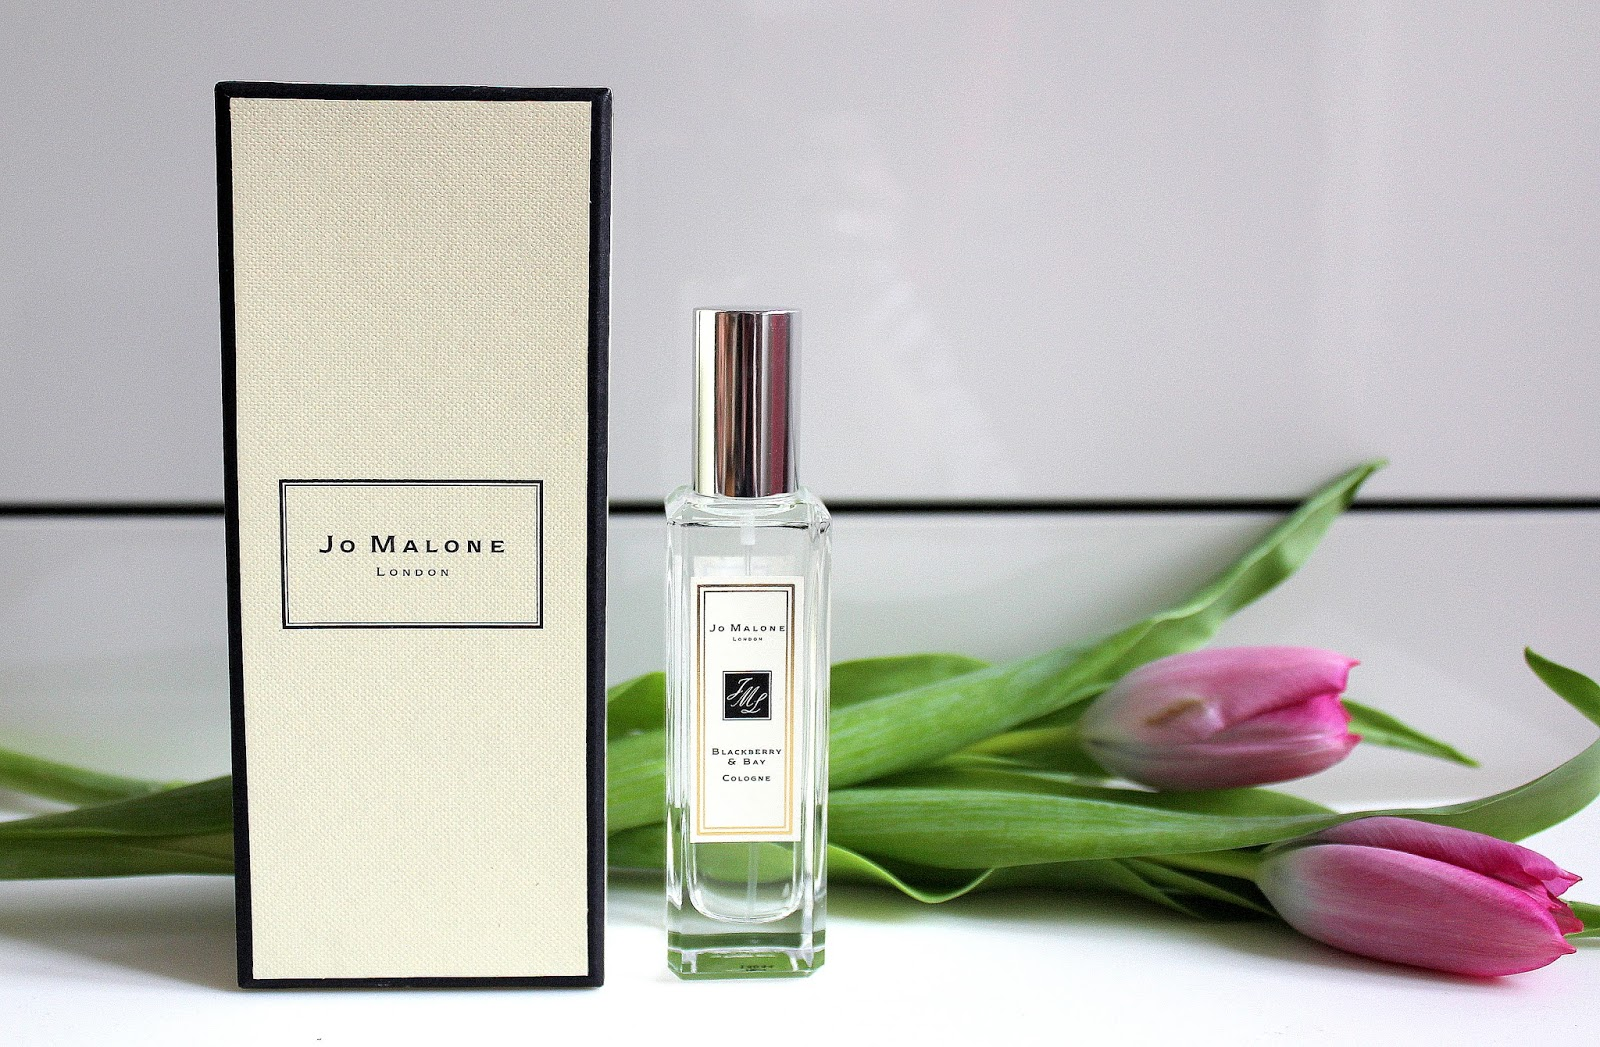 http://ulliks.blogspot.co.at/2014/04/jo-malone-blackberry-bay.html